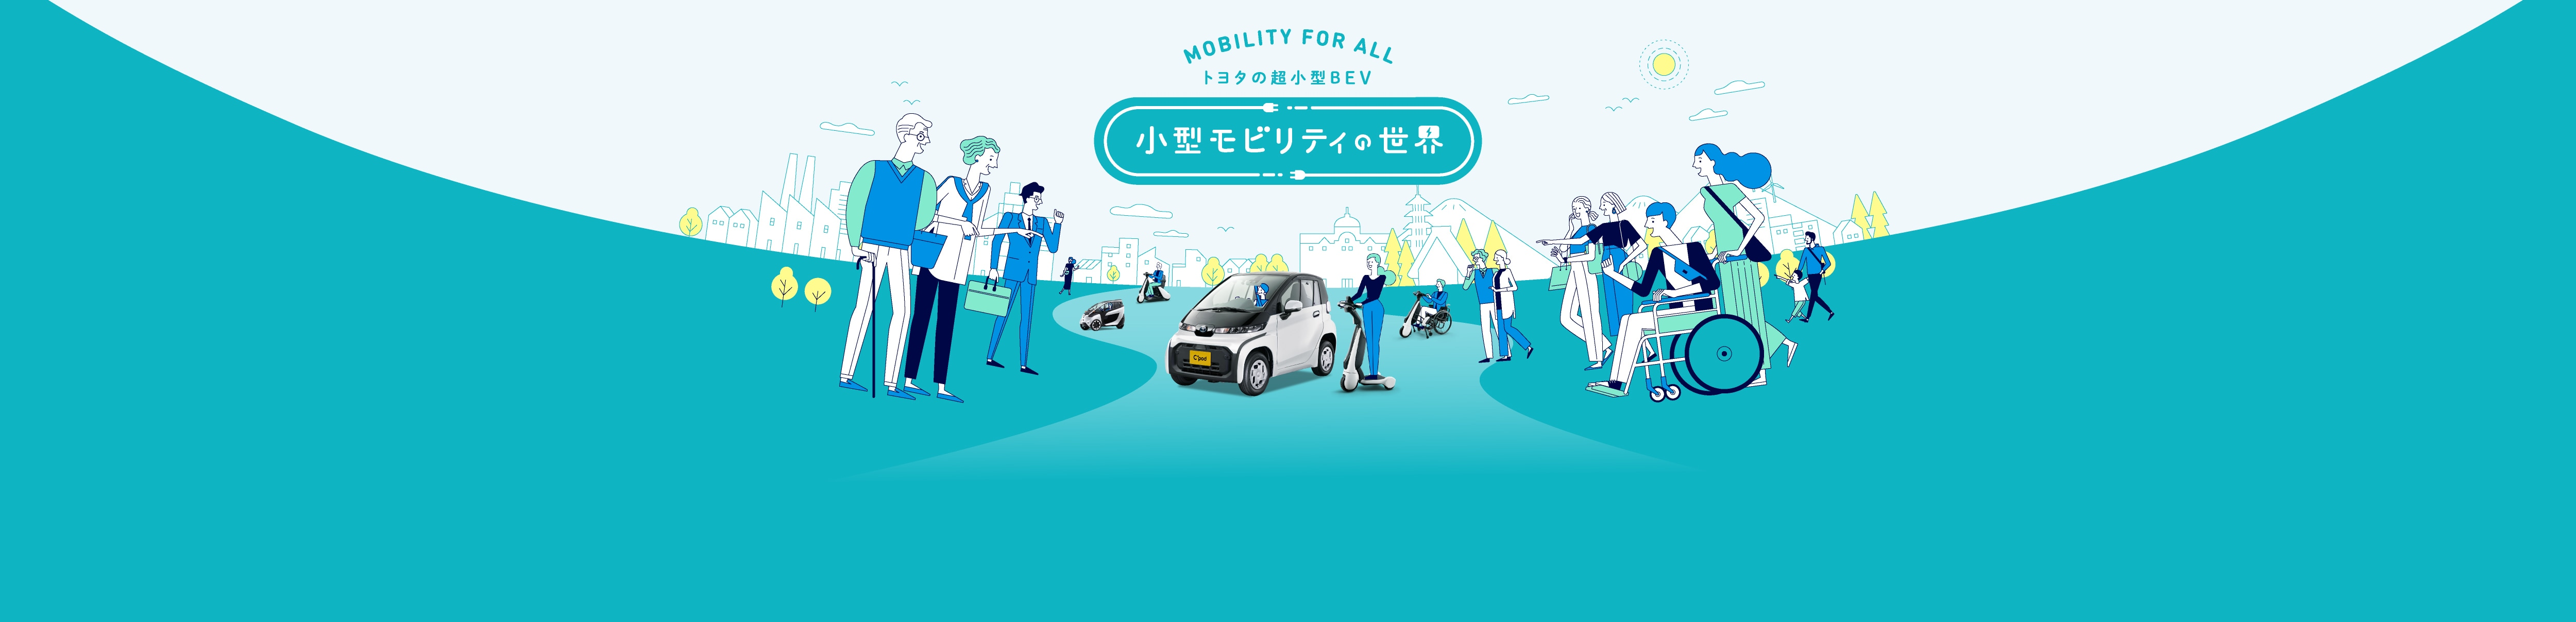 MOBILITY FOR ALL トヨタの超小型EV 小型モビリティの世界